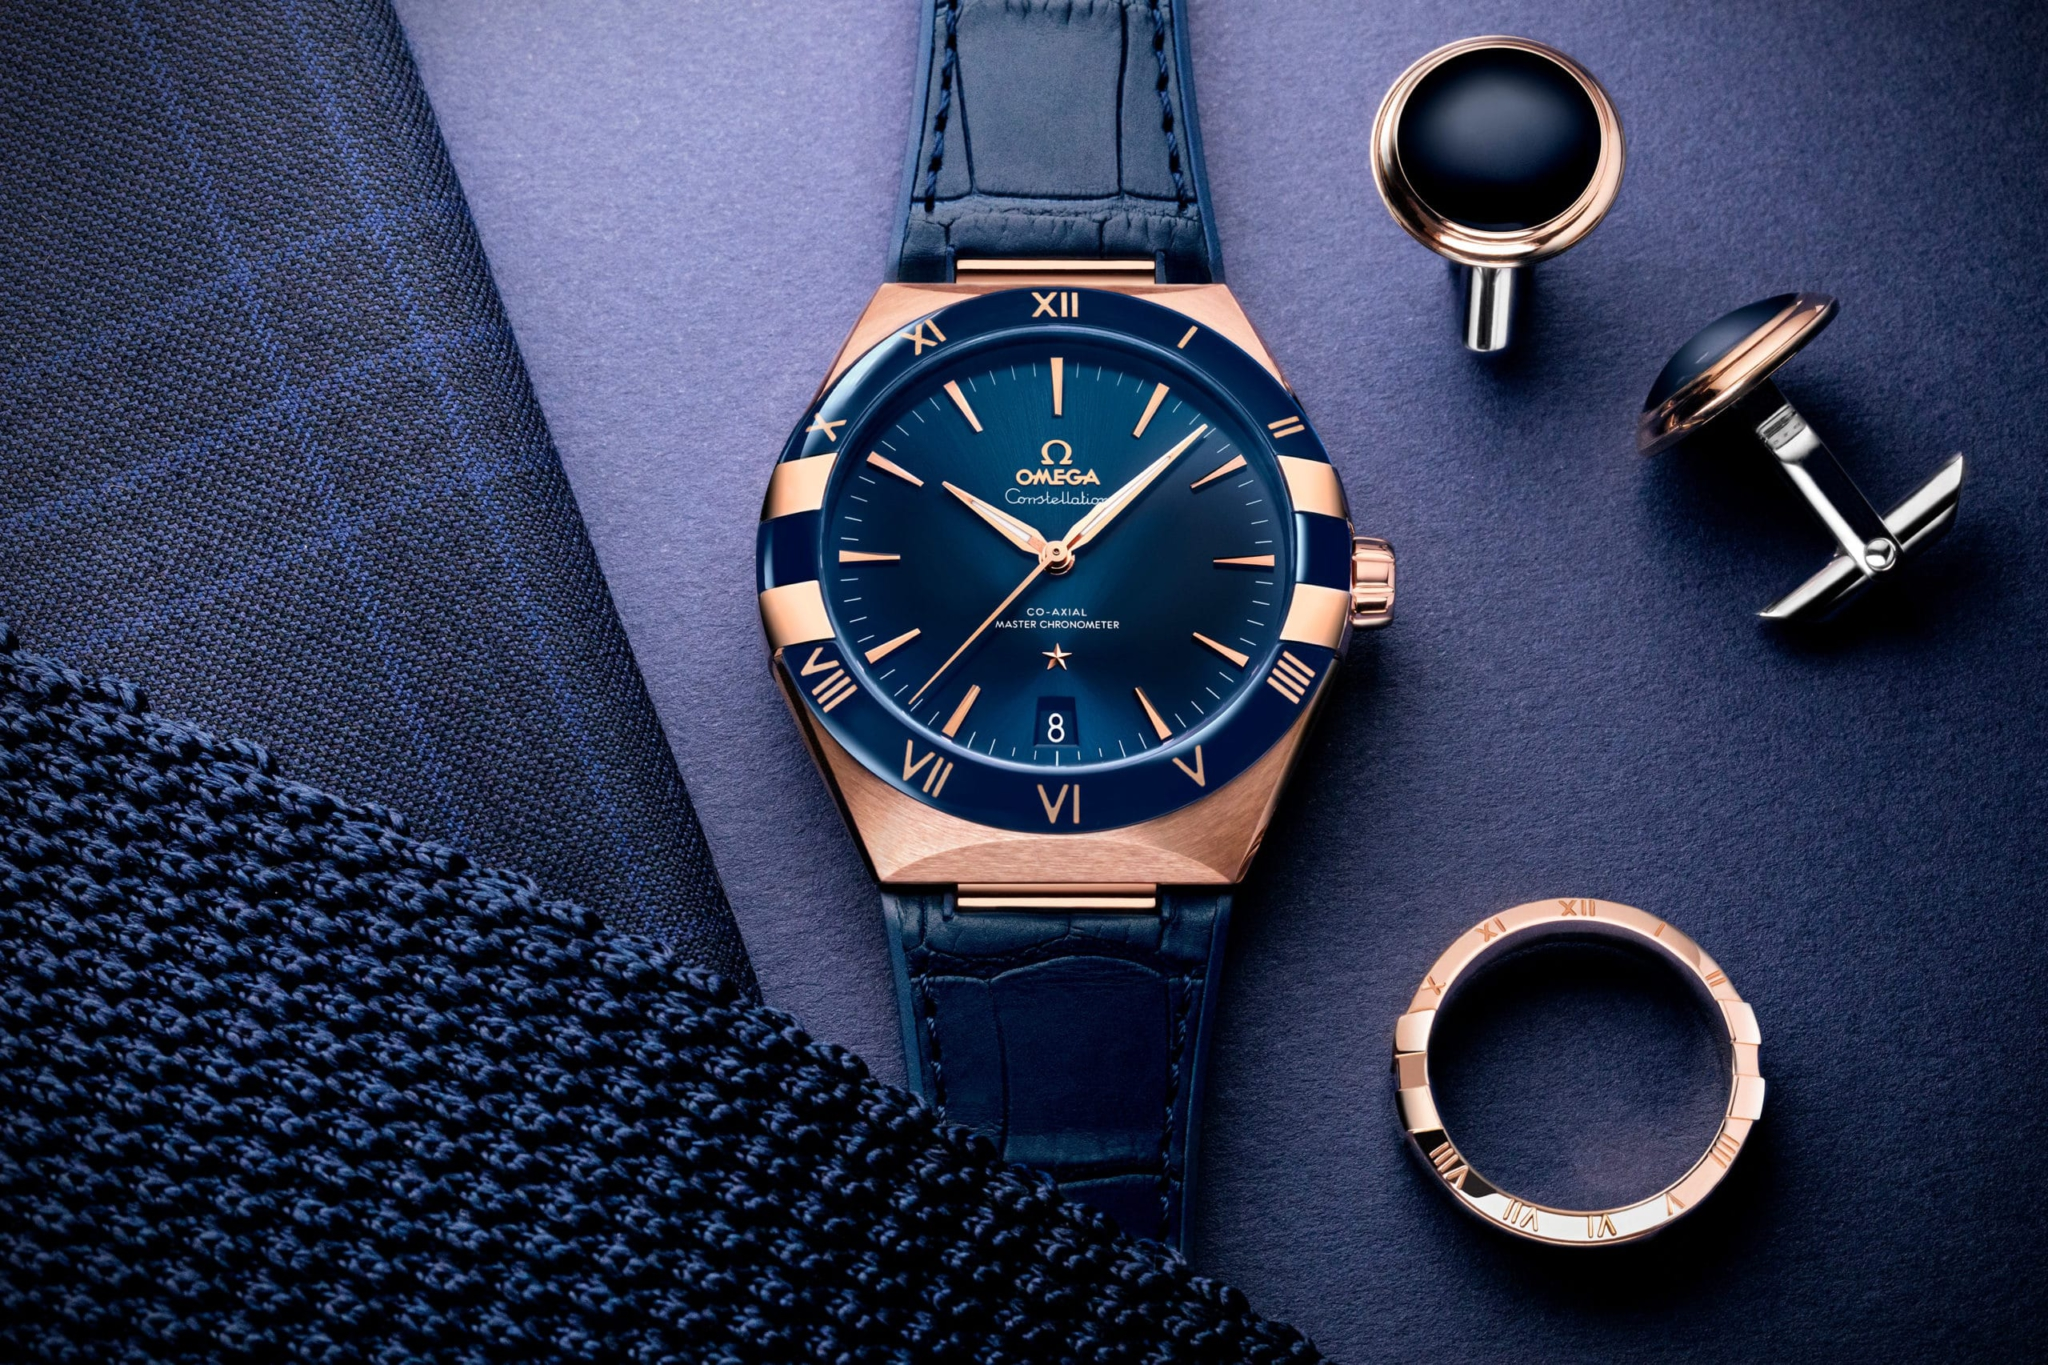 Introducing the newOMEGA Constellation Gents' Collection